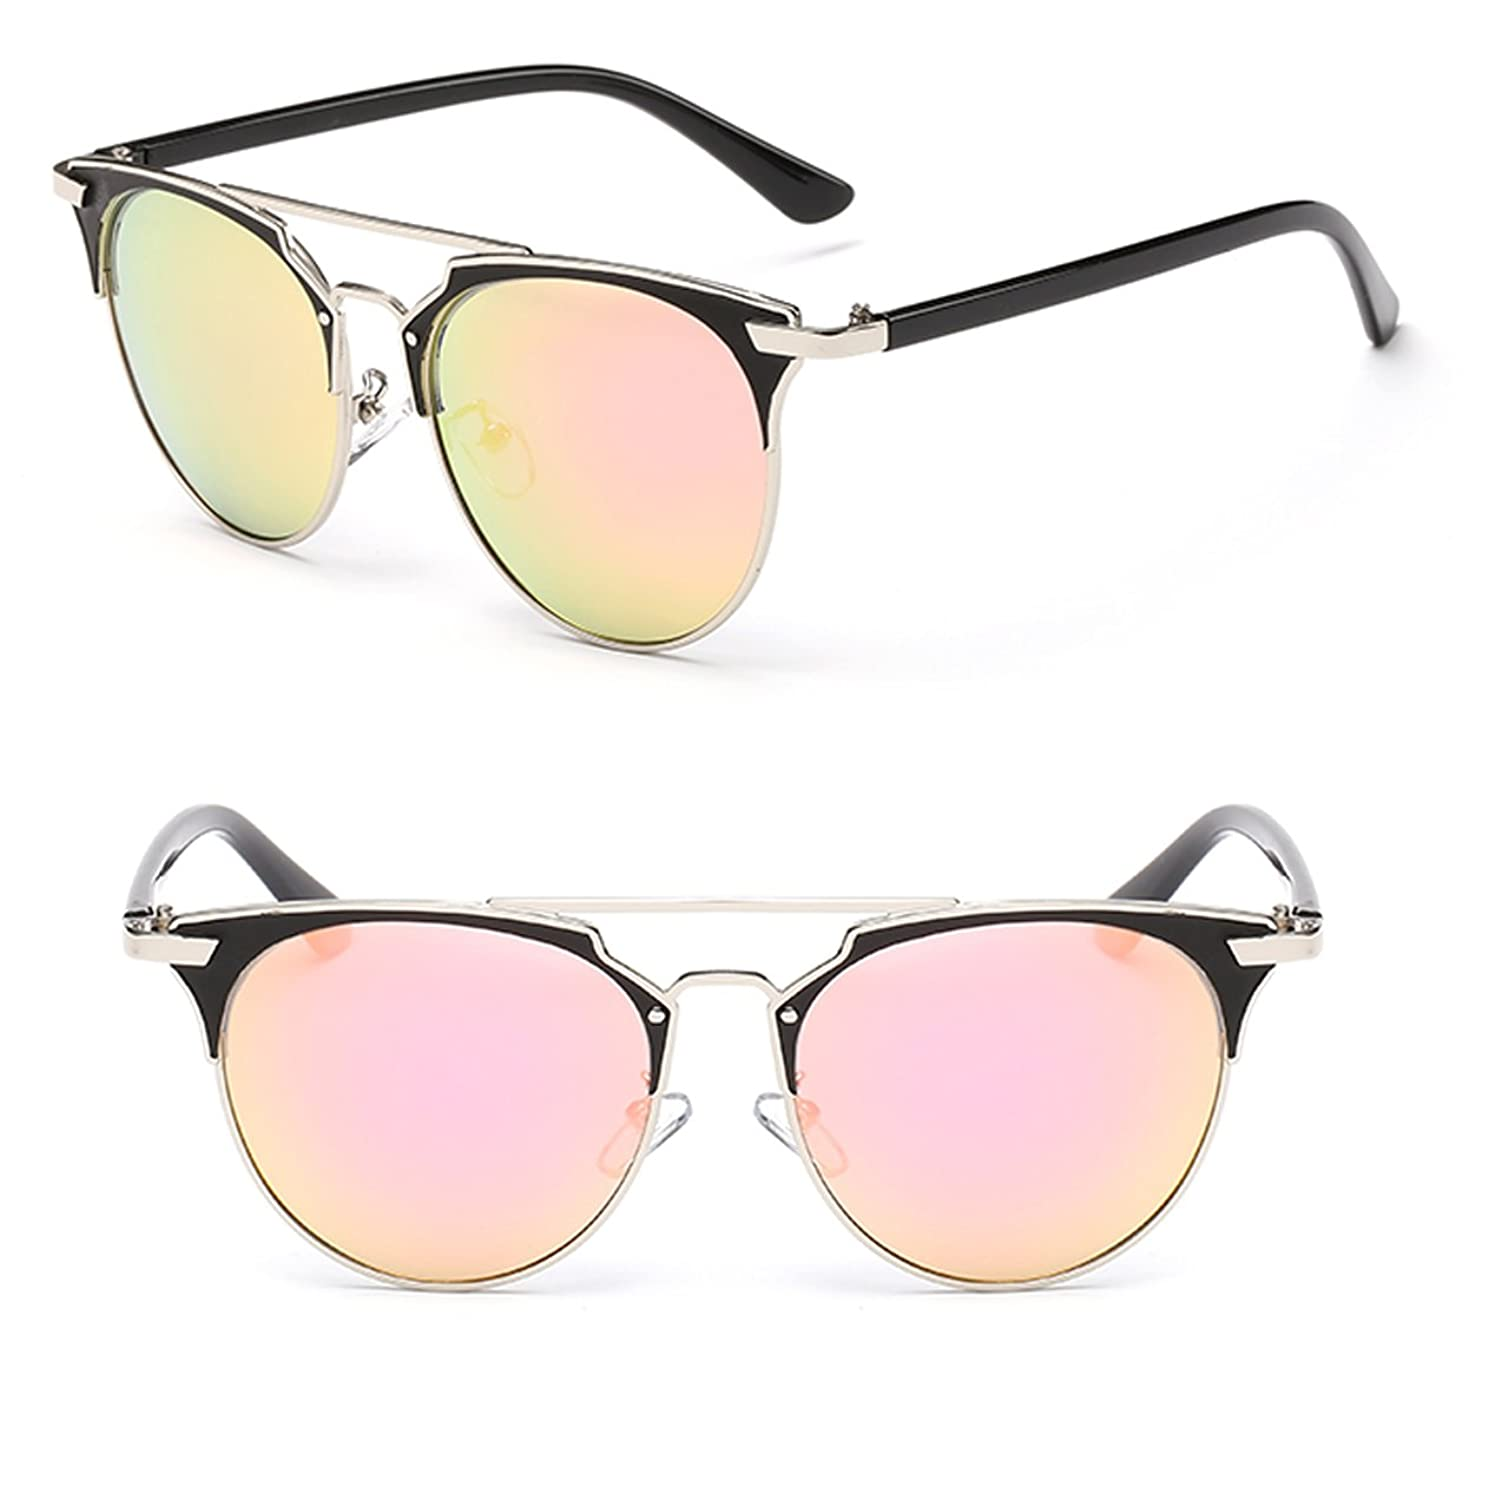 Cateye Polarized UV Protection Sunglasses for Birthday Gift